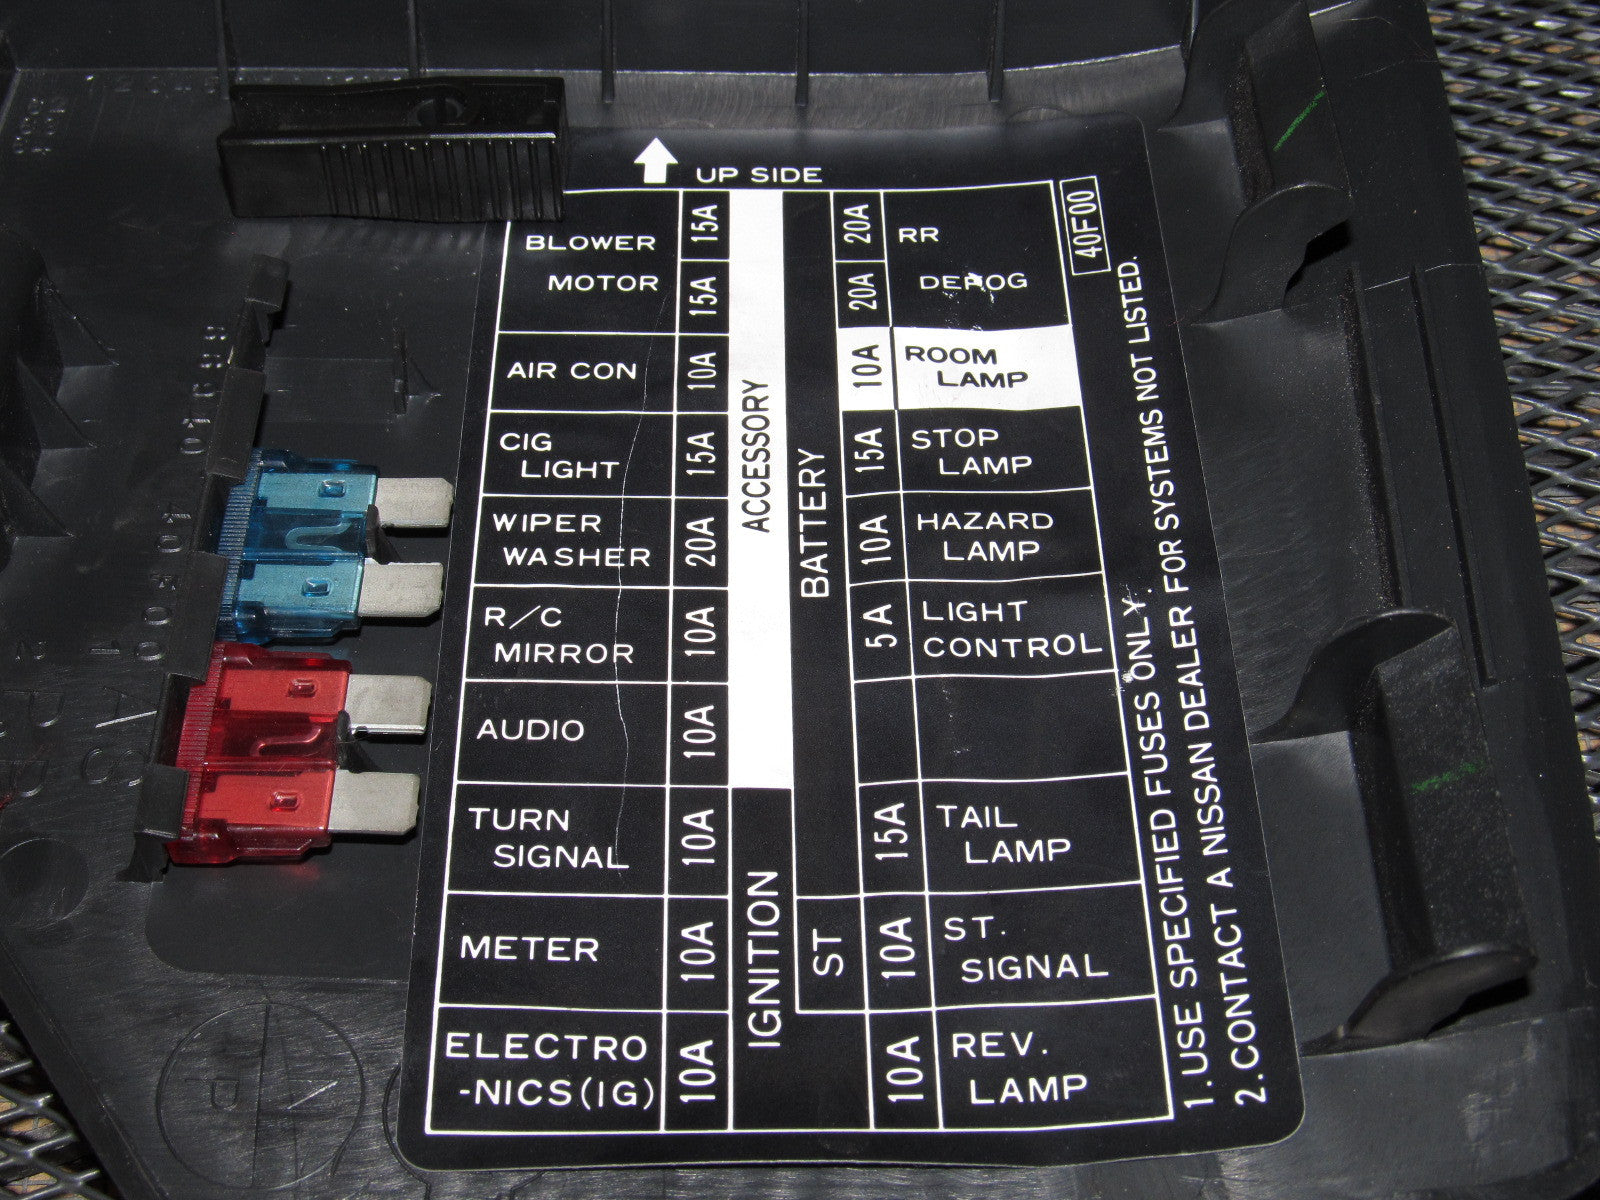 Nissan Fuse Box Diagram : Nissan sx interior fuse box diagram brokeasshome